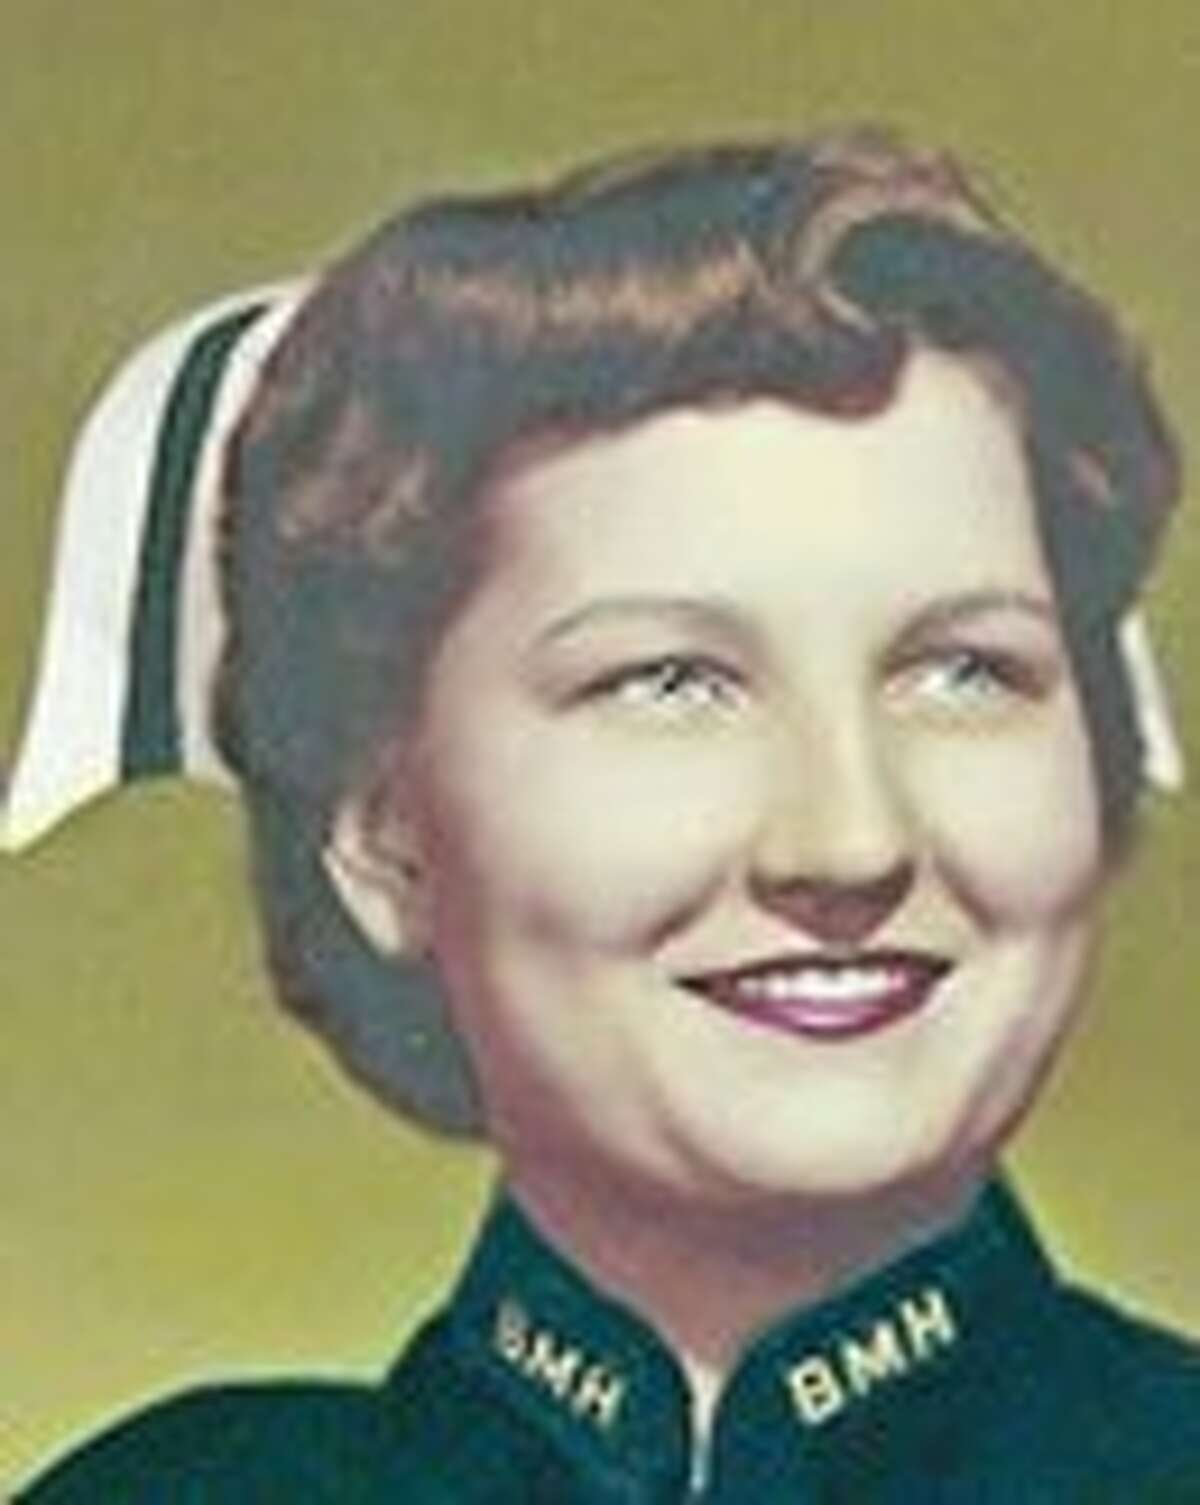 Mildred L. Naegelin Babcock was known for her no-nonsense attitude and immaculate nursing uniform.